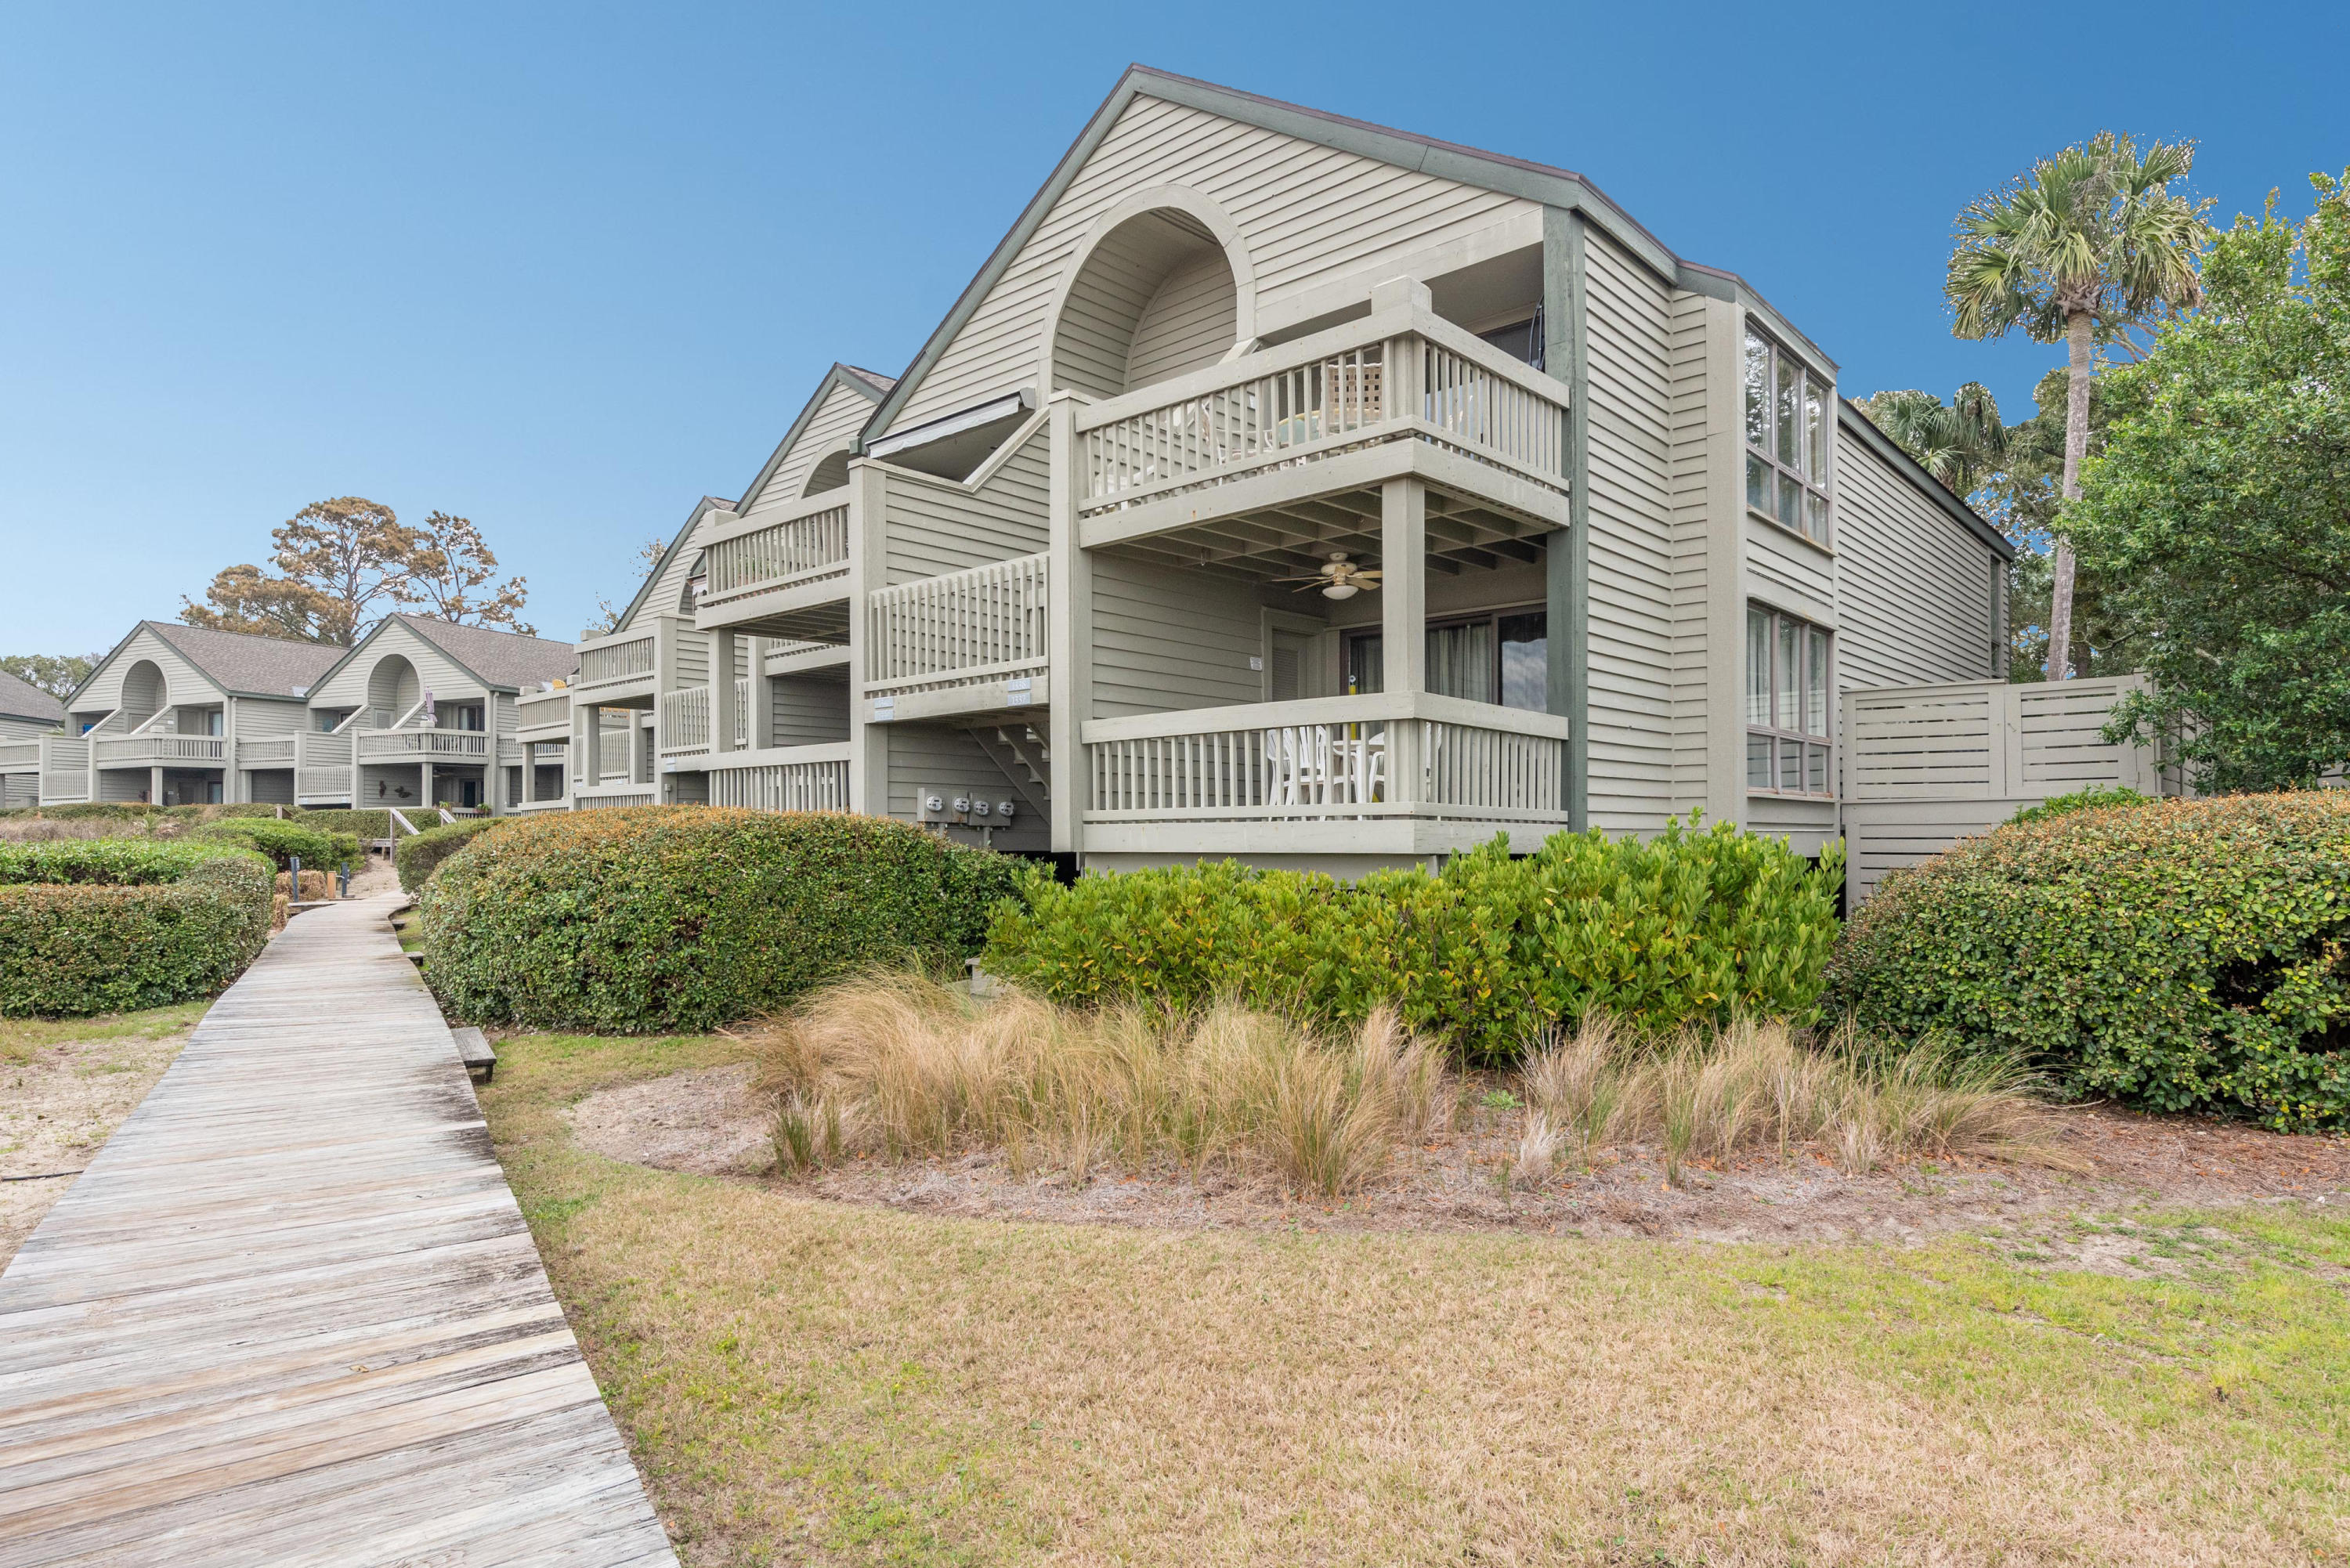 Seabrook Island Homes For Sale - 1339 Pelican Watch Villas, Seabrook Island, SC - 7